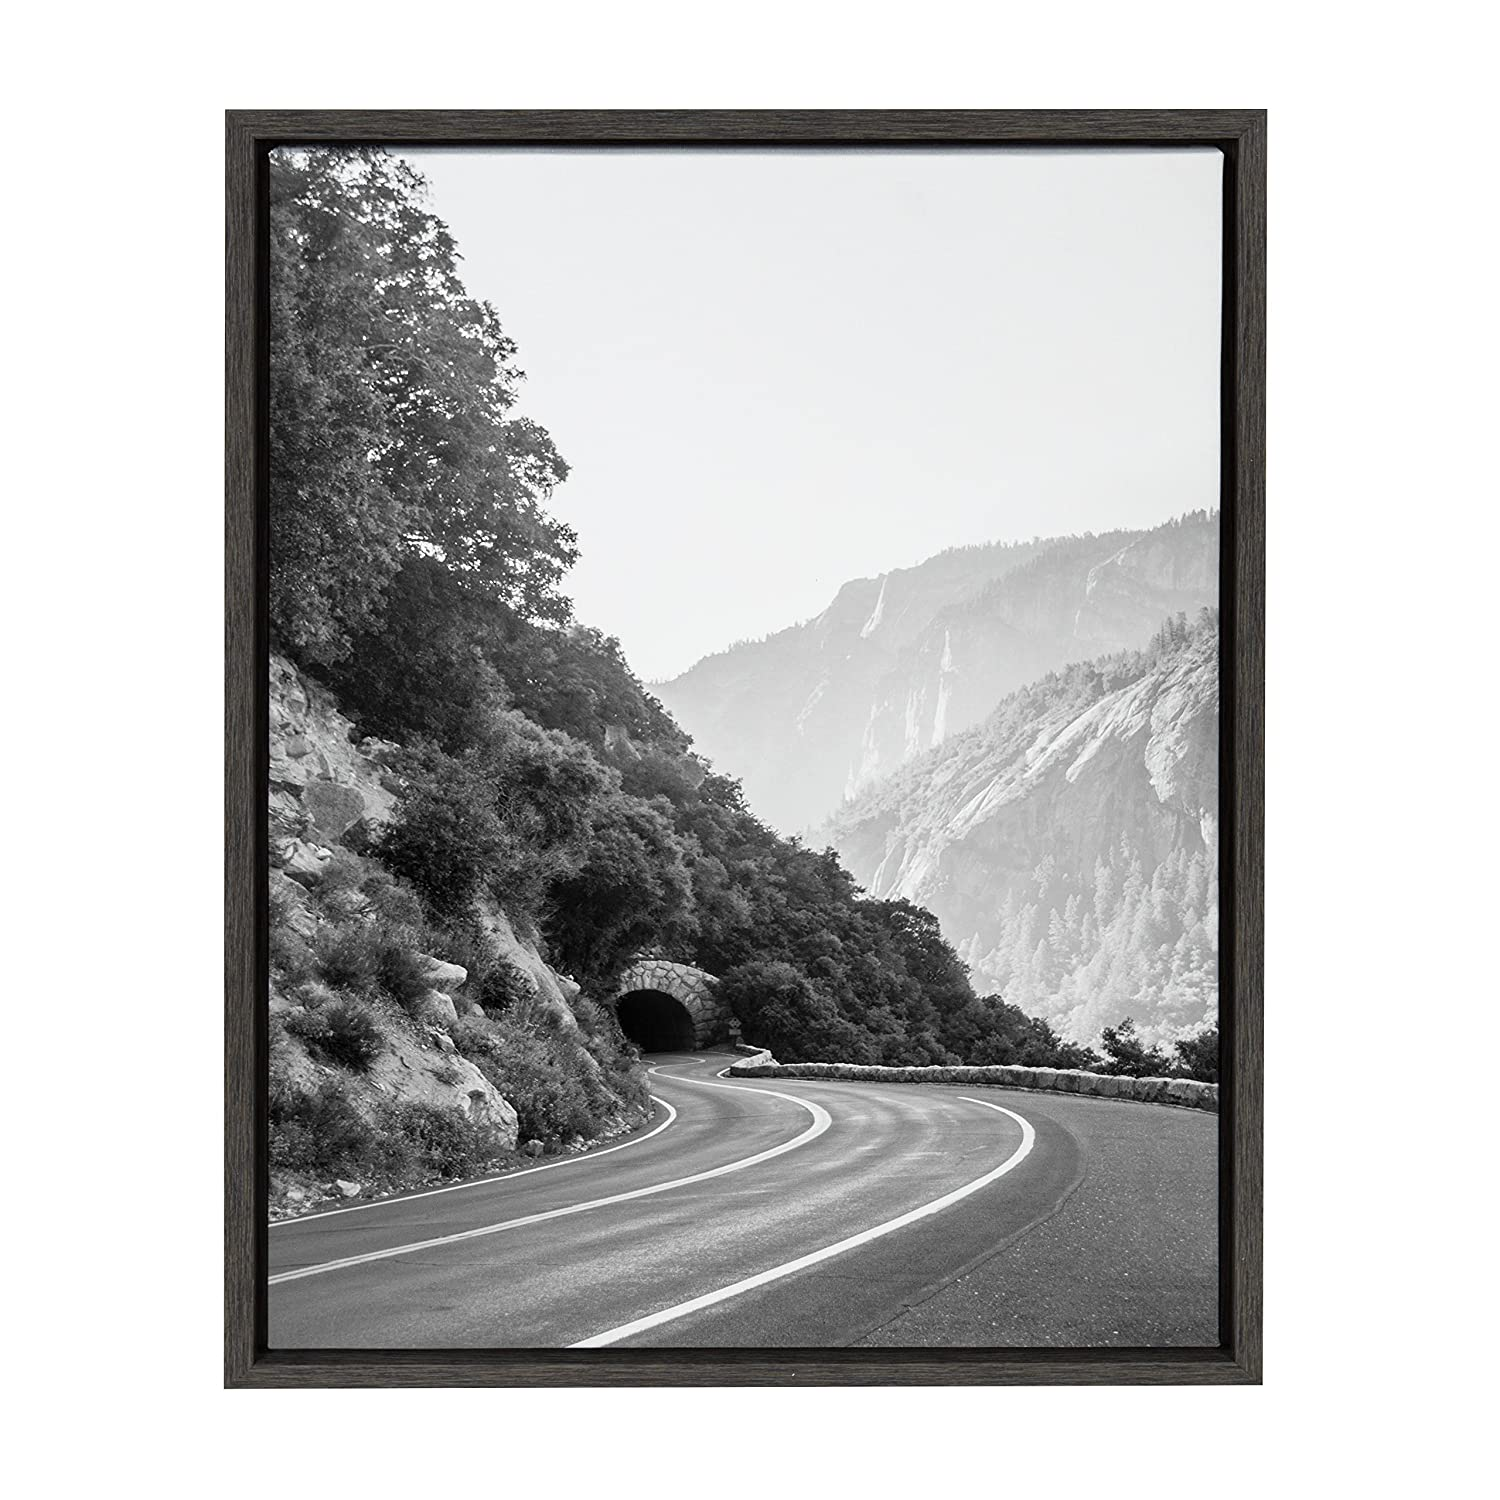 Kate and laurel sylvie yosemite tunnel californias sierra nevada mountains black and white photograph framed canvas wall art by f2 images